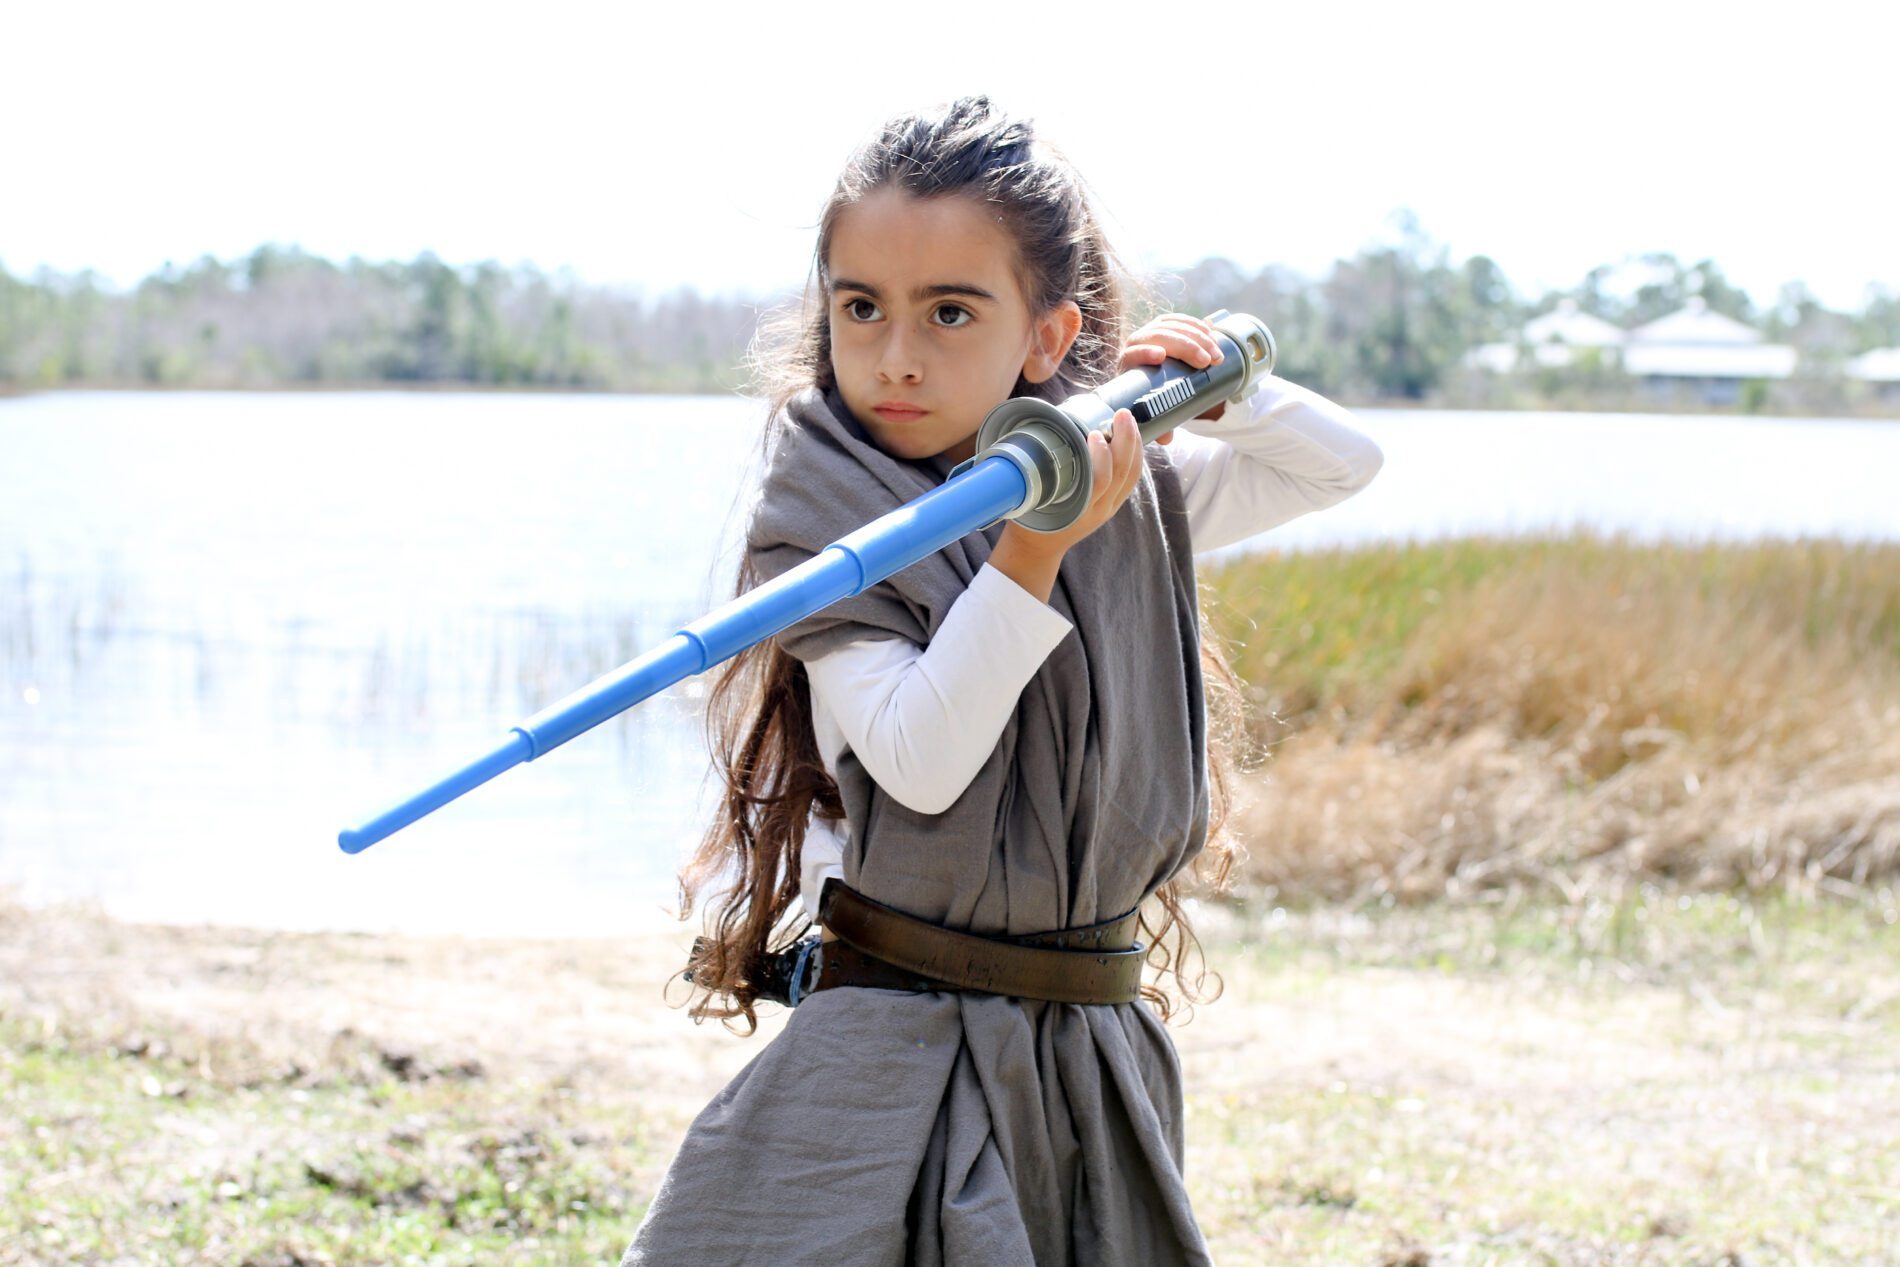 Little girl dressed as a Jedi from Star Wars